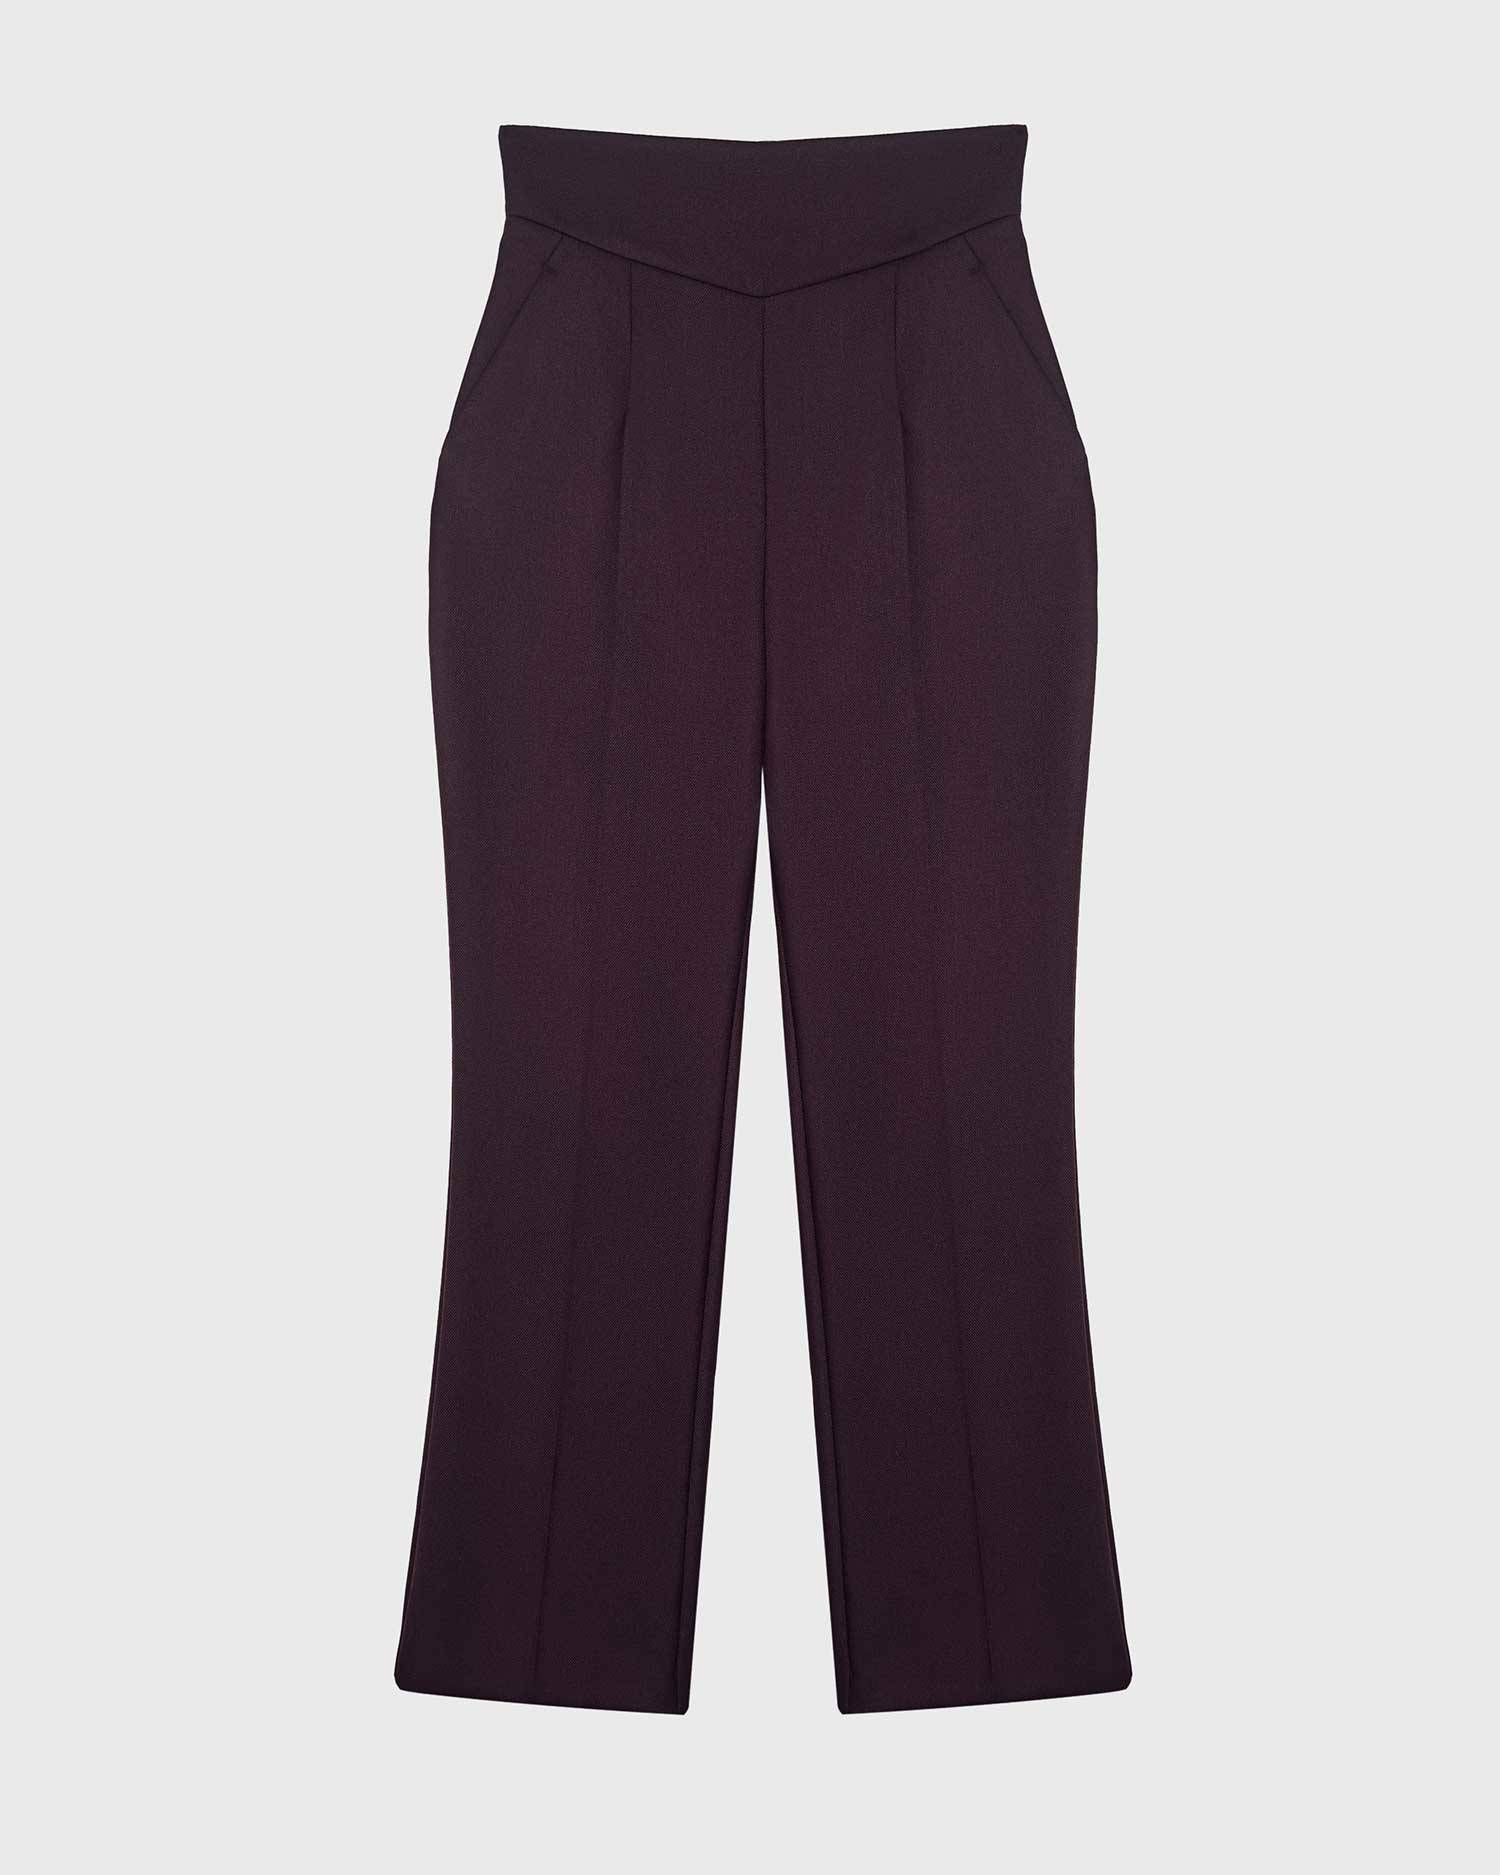 Costume high-waisted pants